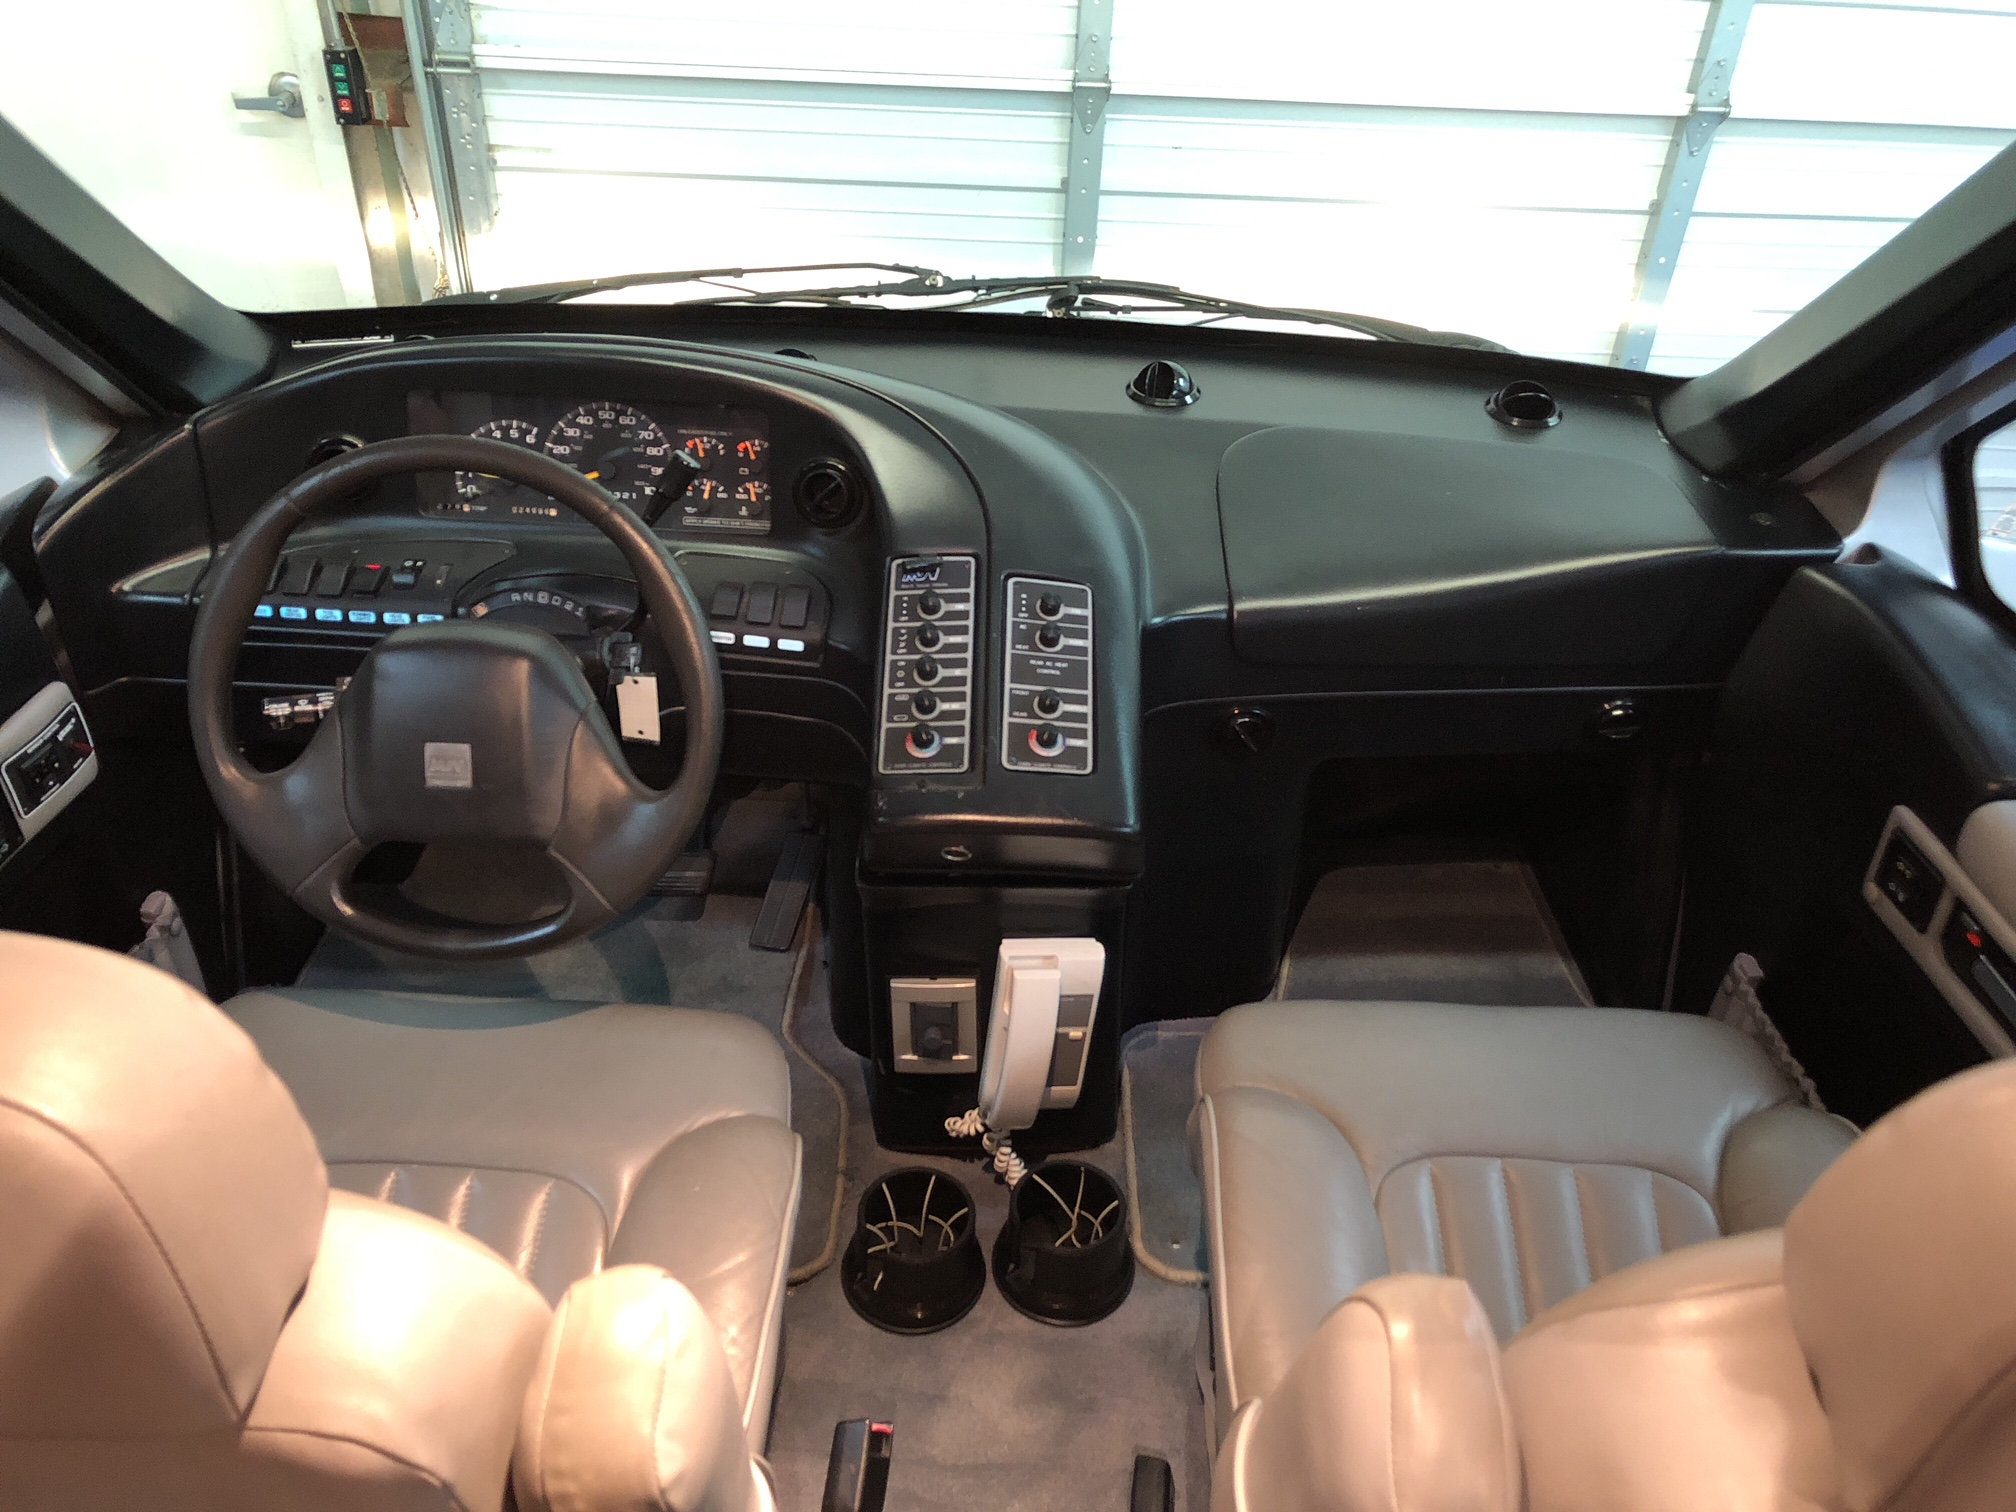 1998 Mauck MSV 1120s interior Front